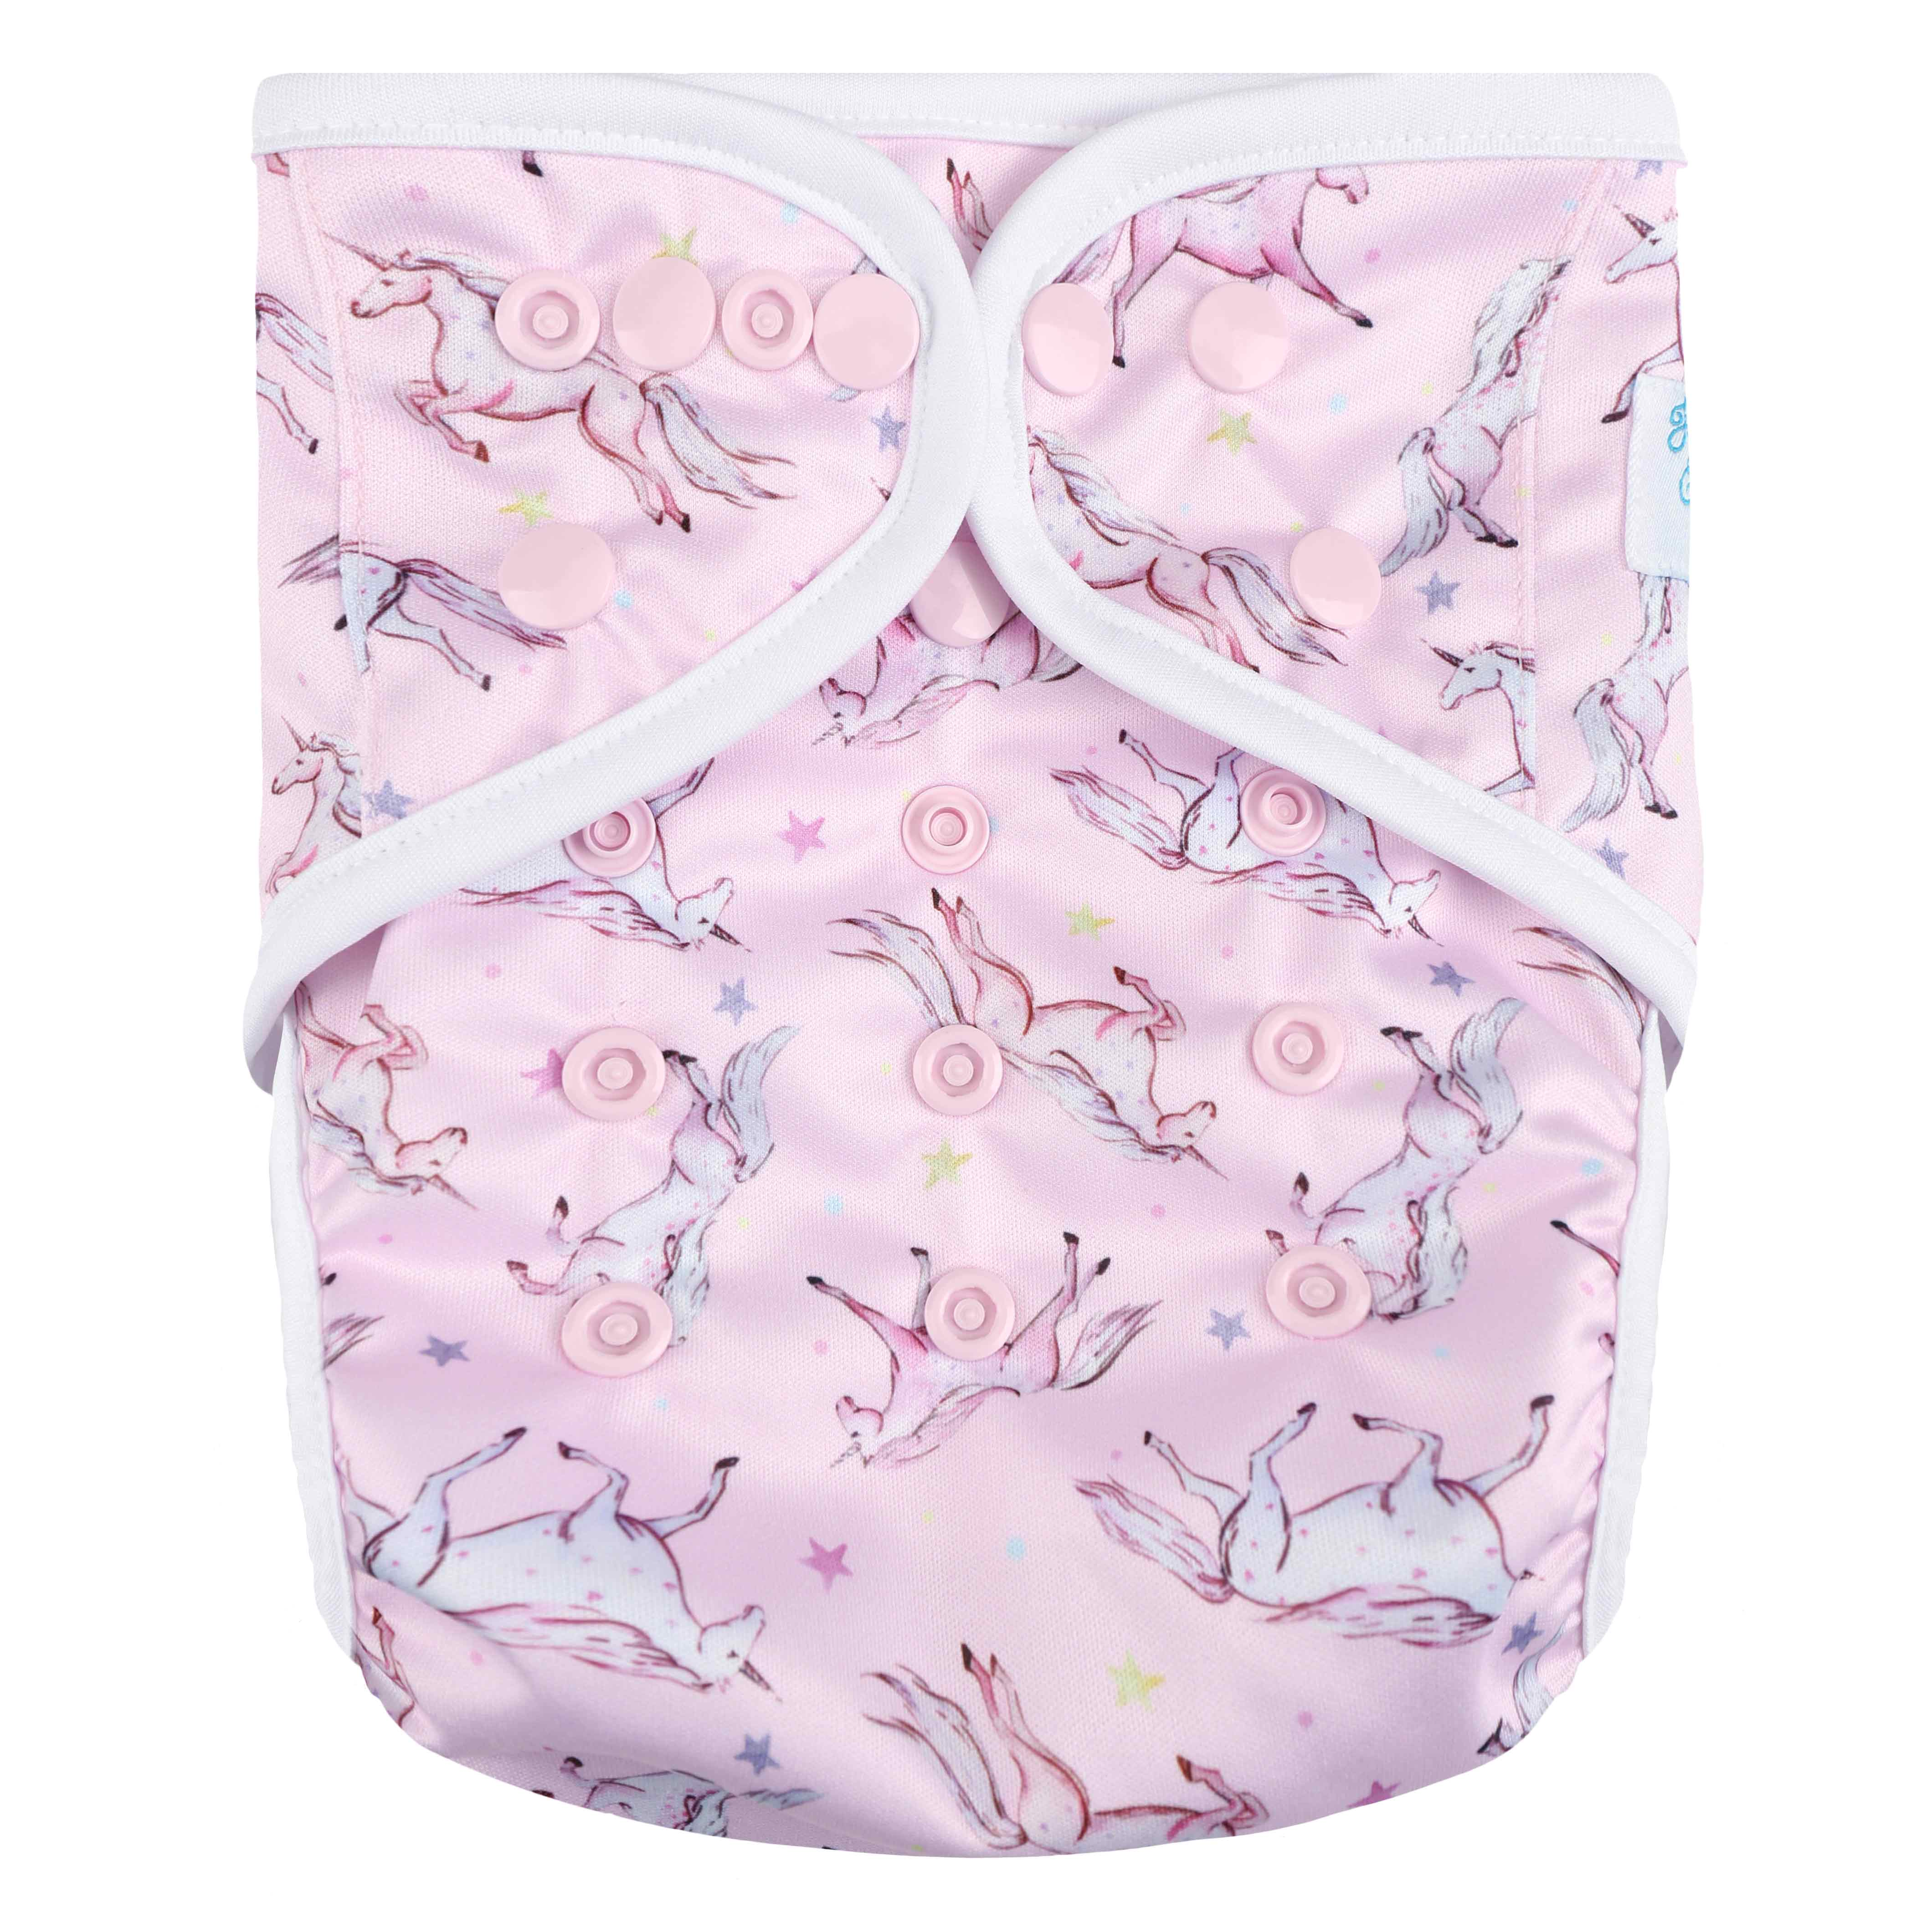 "HappyEndings One Size Cloth Diaper Cover AI2 System ""Unicorns"""